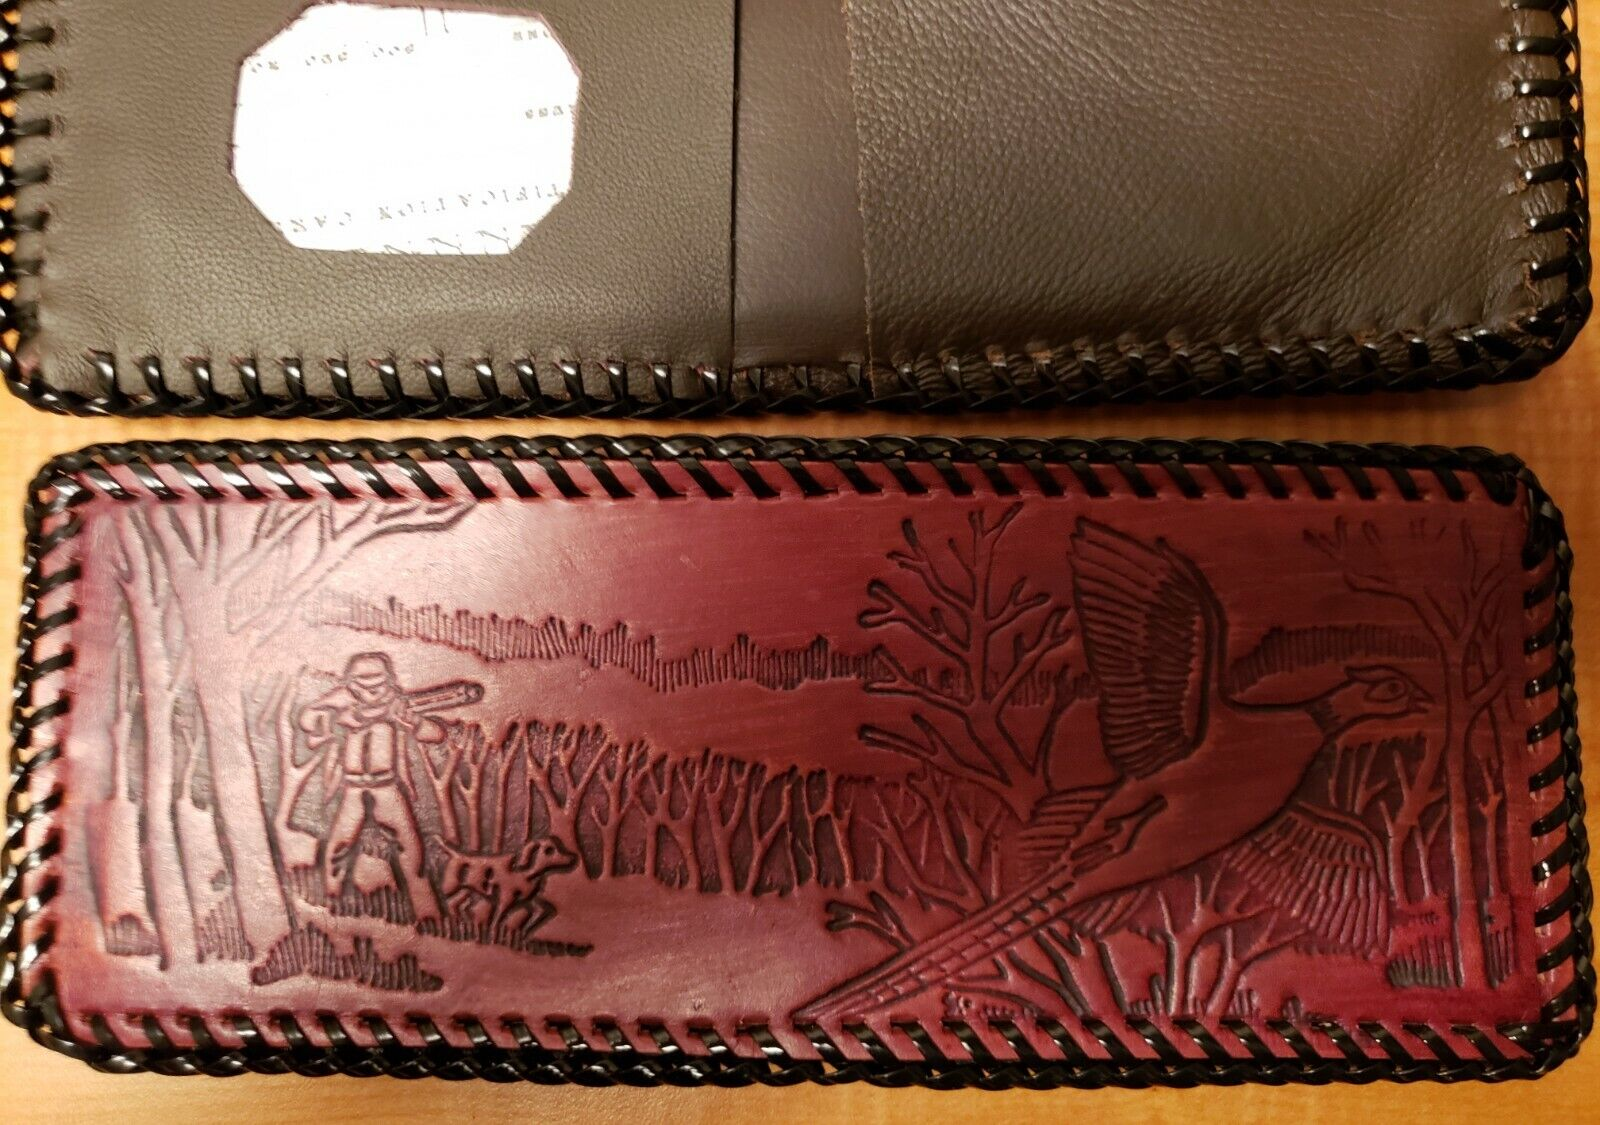 Pheasant Hunter - Beautiful Leather laced wallet made in U.S.A. prison made